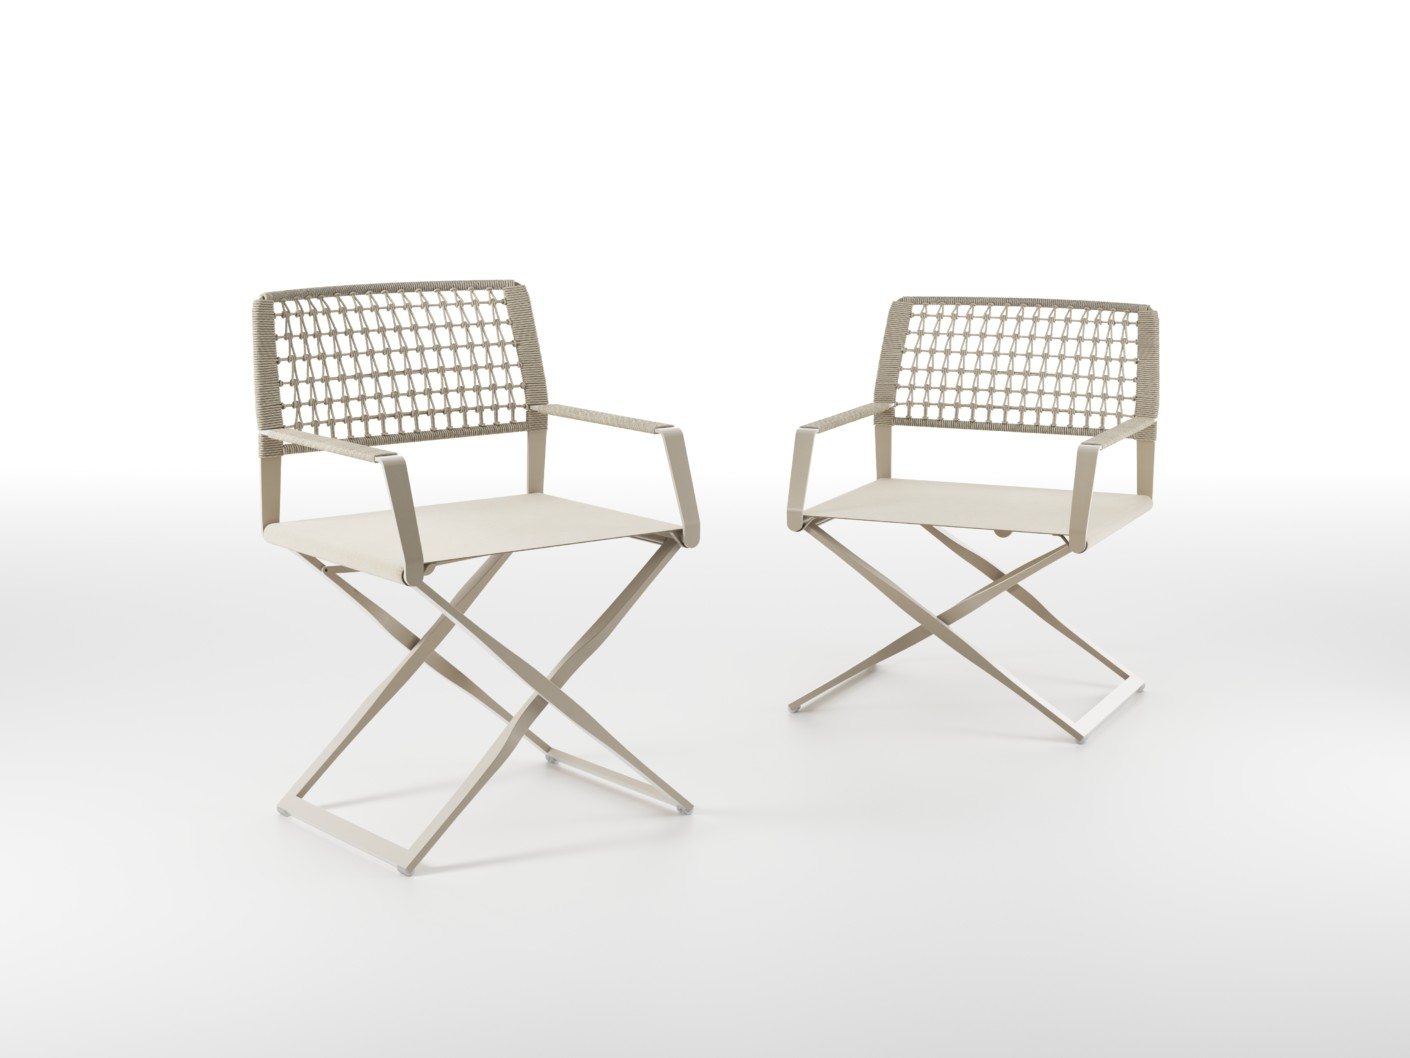 Regista Chairs by Tribù